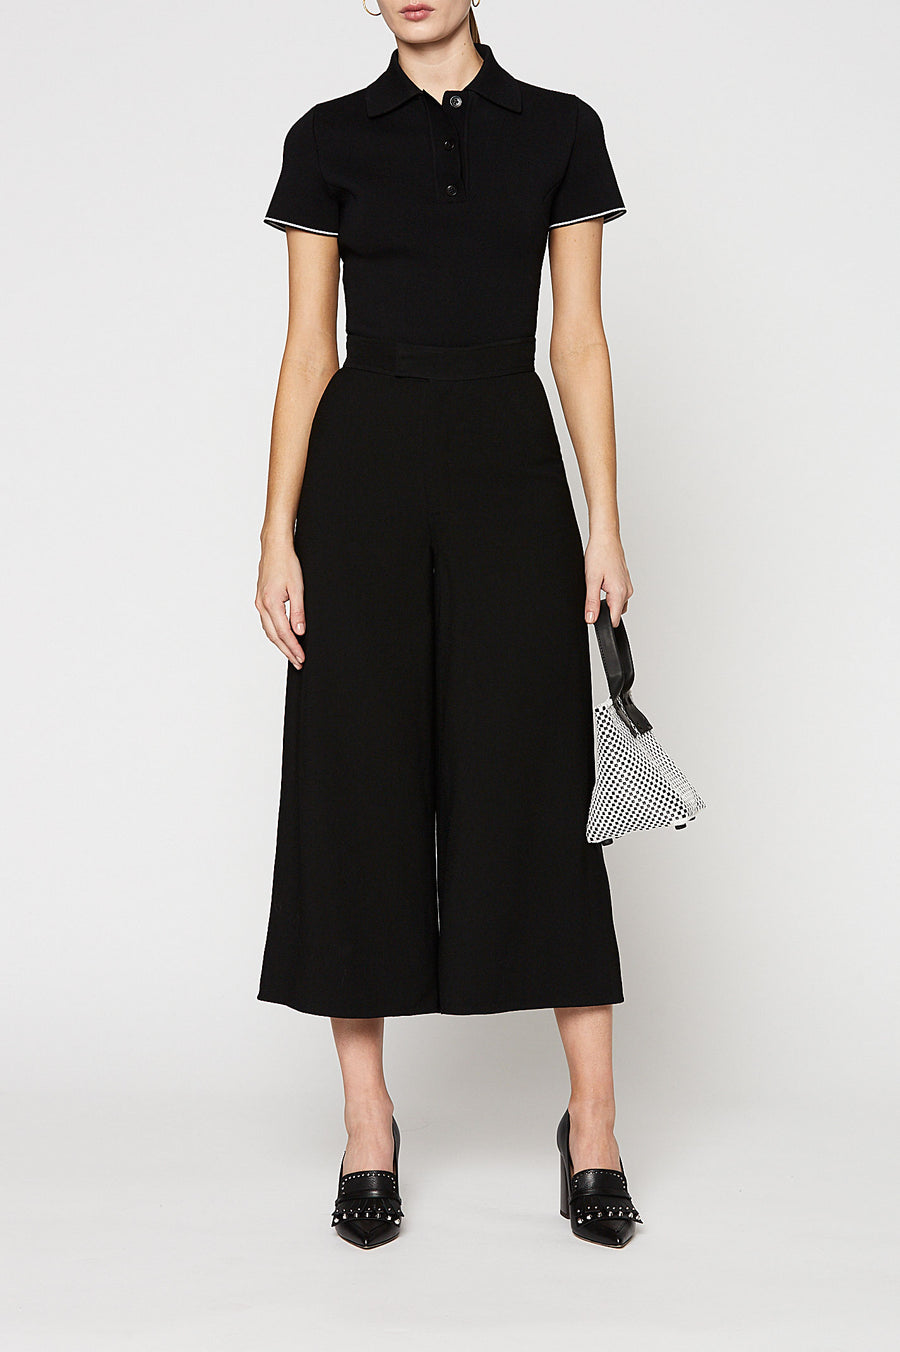 CREPE CULOTTE, high waist, falls above ankle, BLACK color